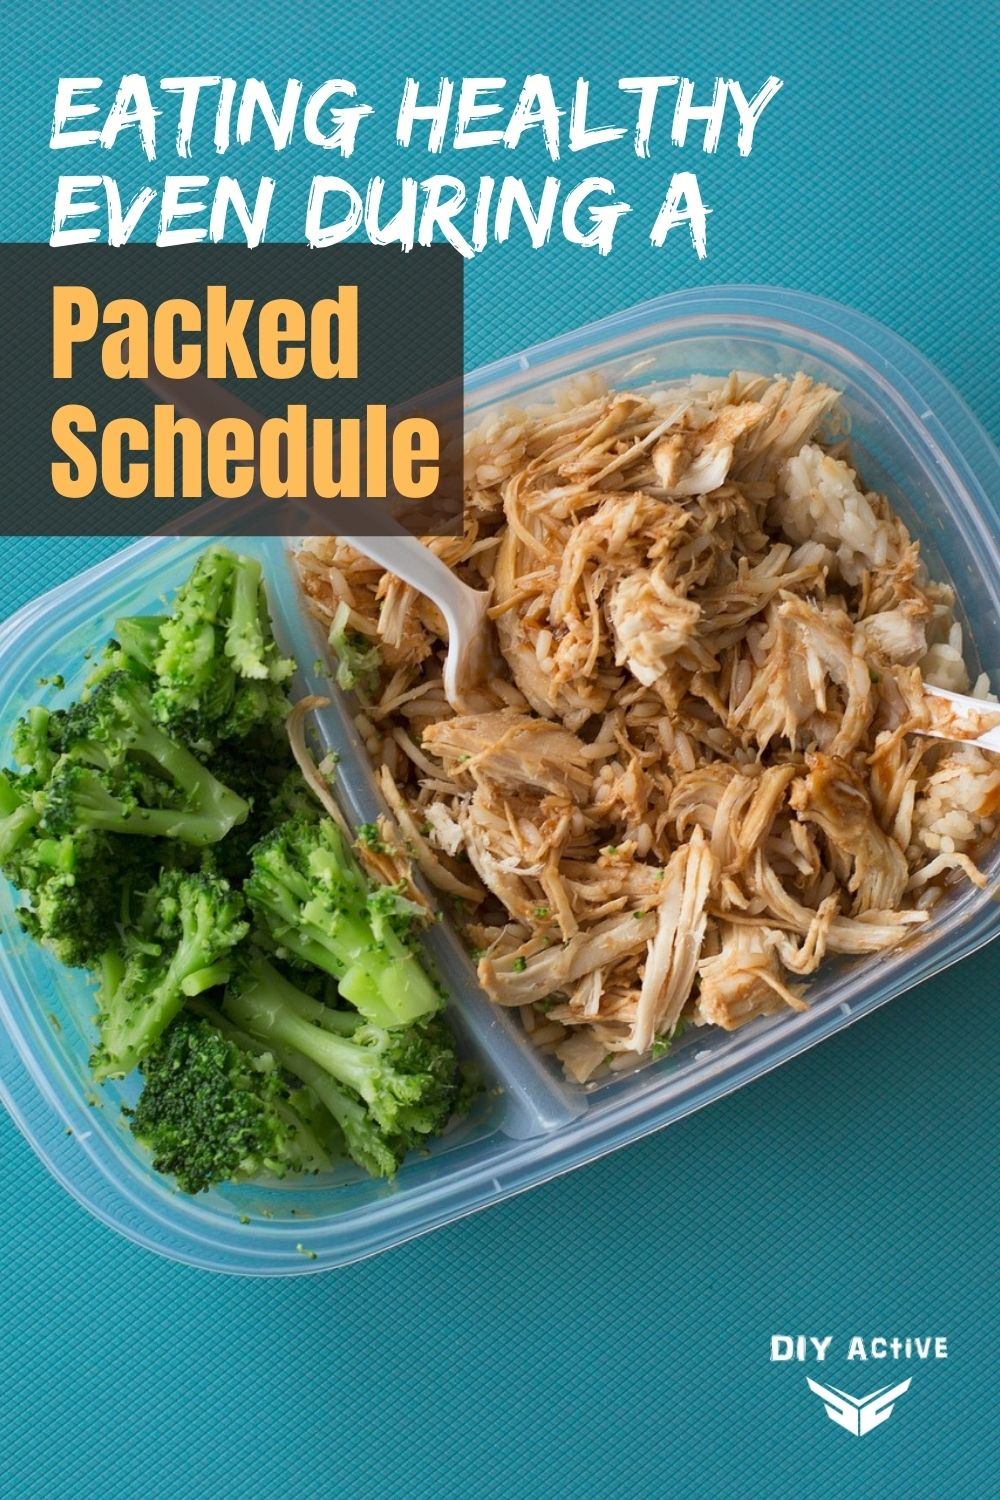 Eating Healthy Even During a Packed Schedule